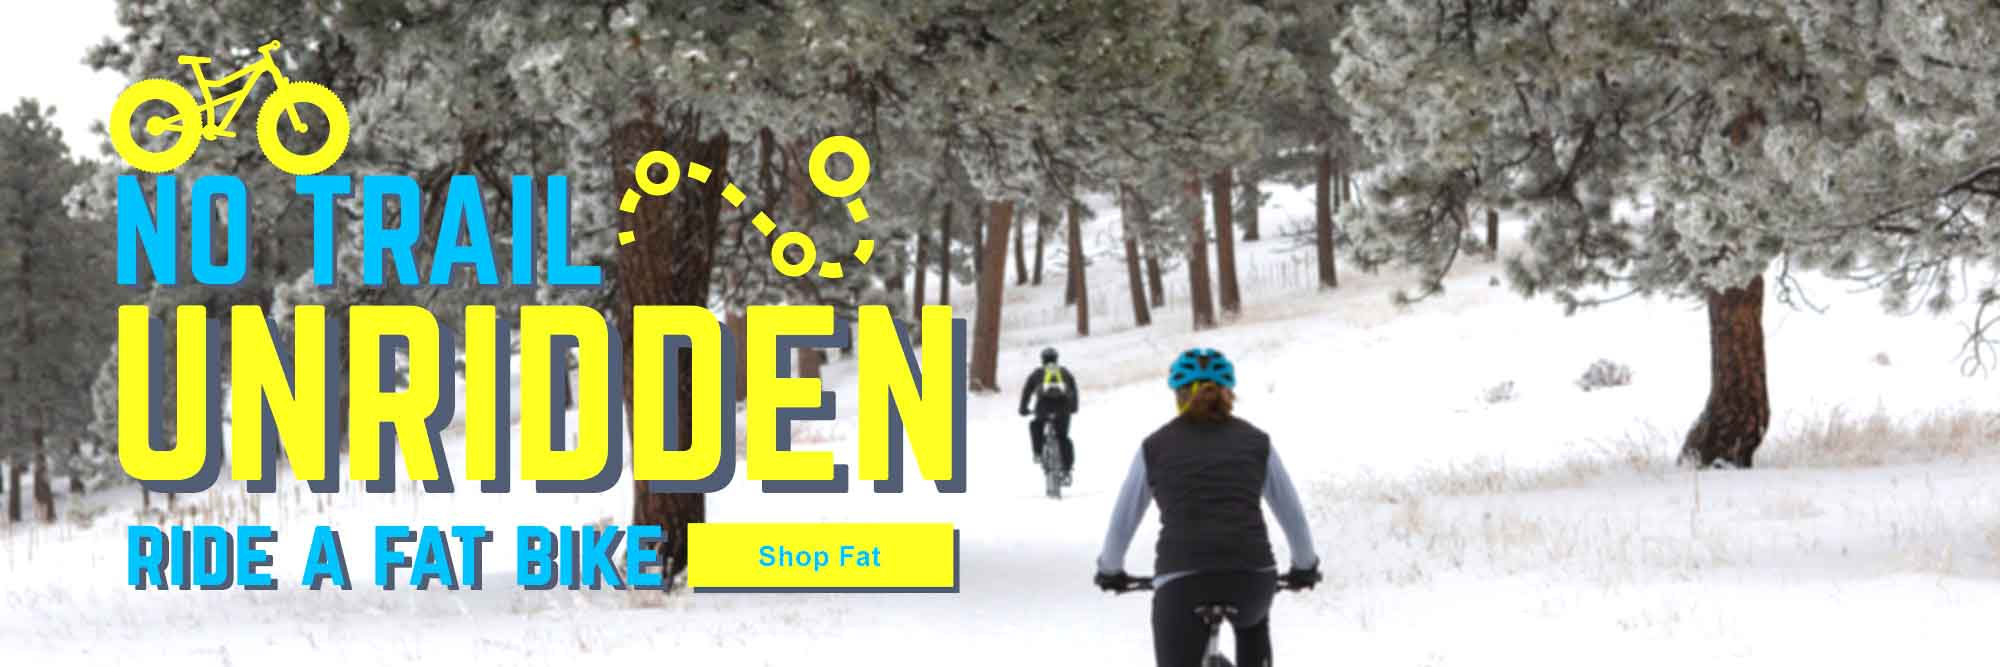 This Winter Ride a Fat Bike